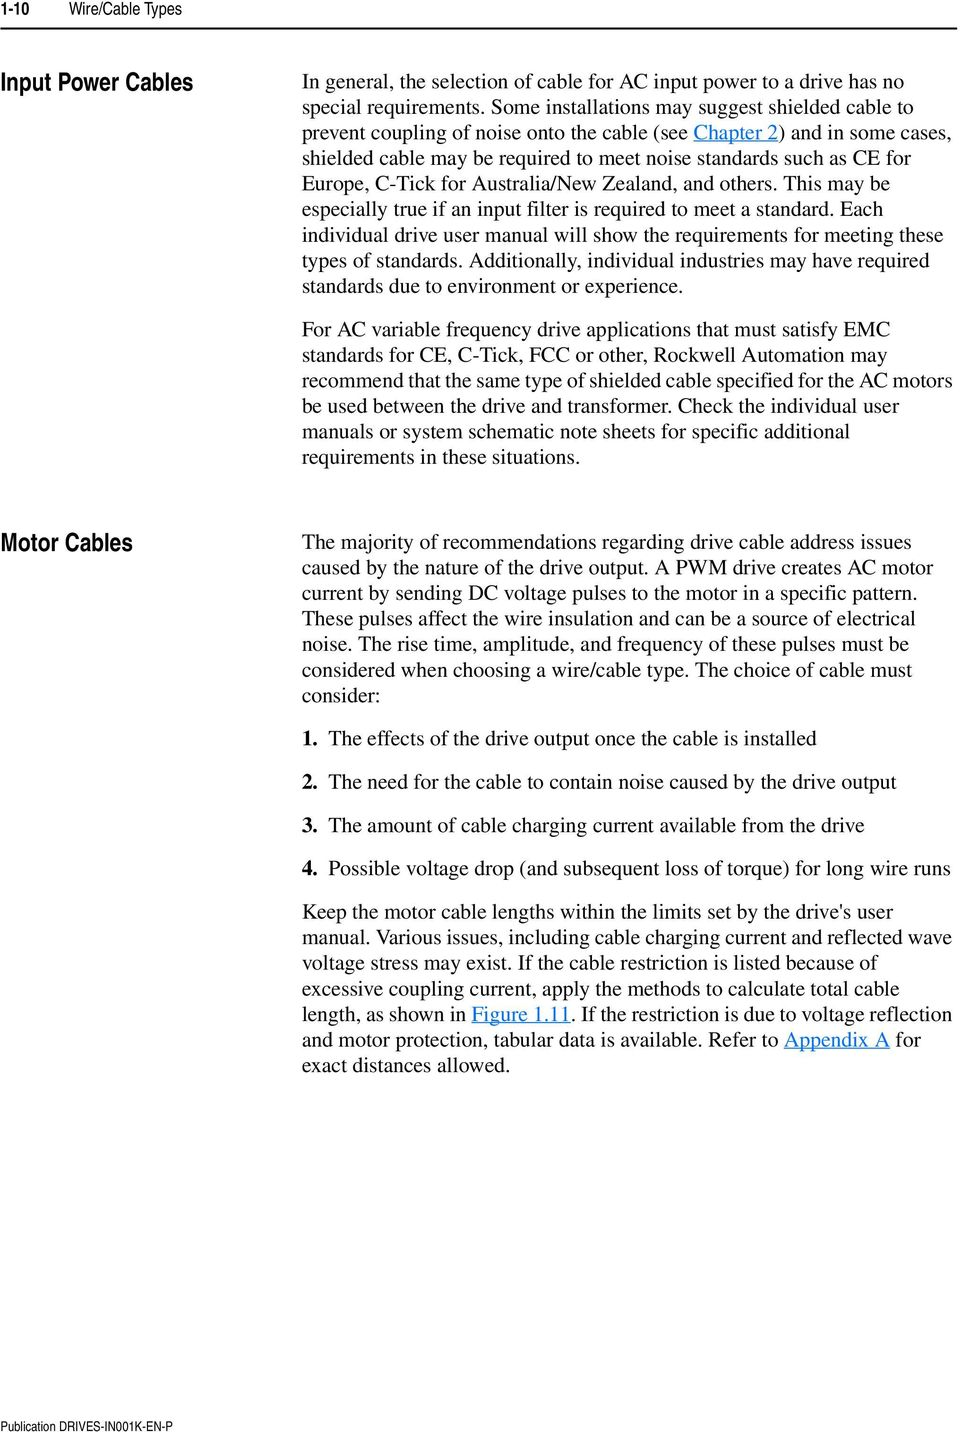 Installation Instructions Wiring And Grounding Guidelines For Pulse European Industrial Color Code Chart Free Download Europe C Tick Australia New Zealand Others This May 19 Wire Cable